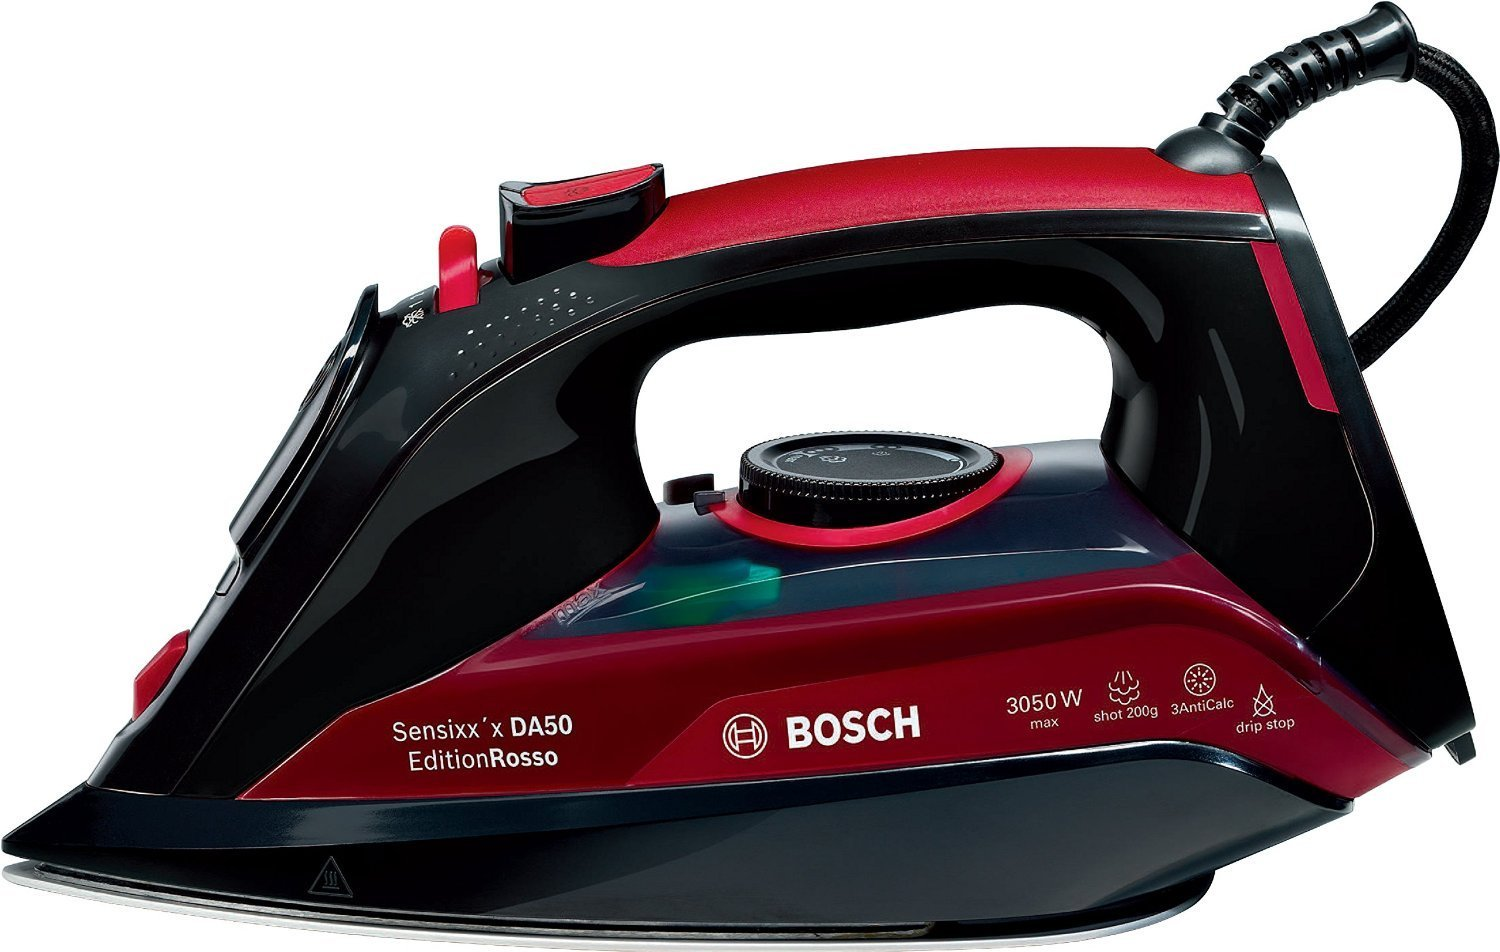 Bosch TDA5070GB Steam Iron, 3050 W - Black/Red and Ironing Board Bundle